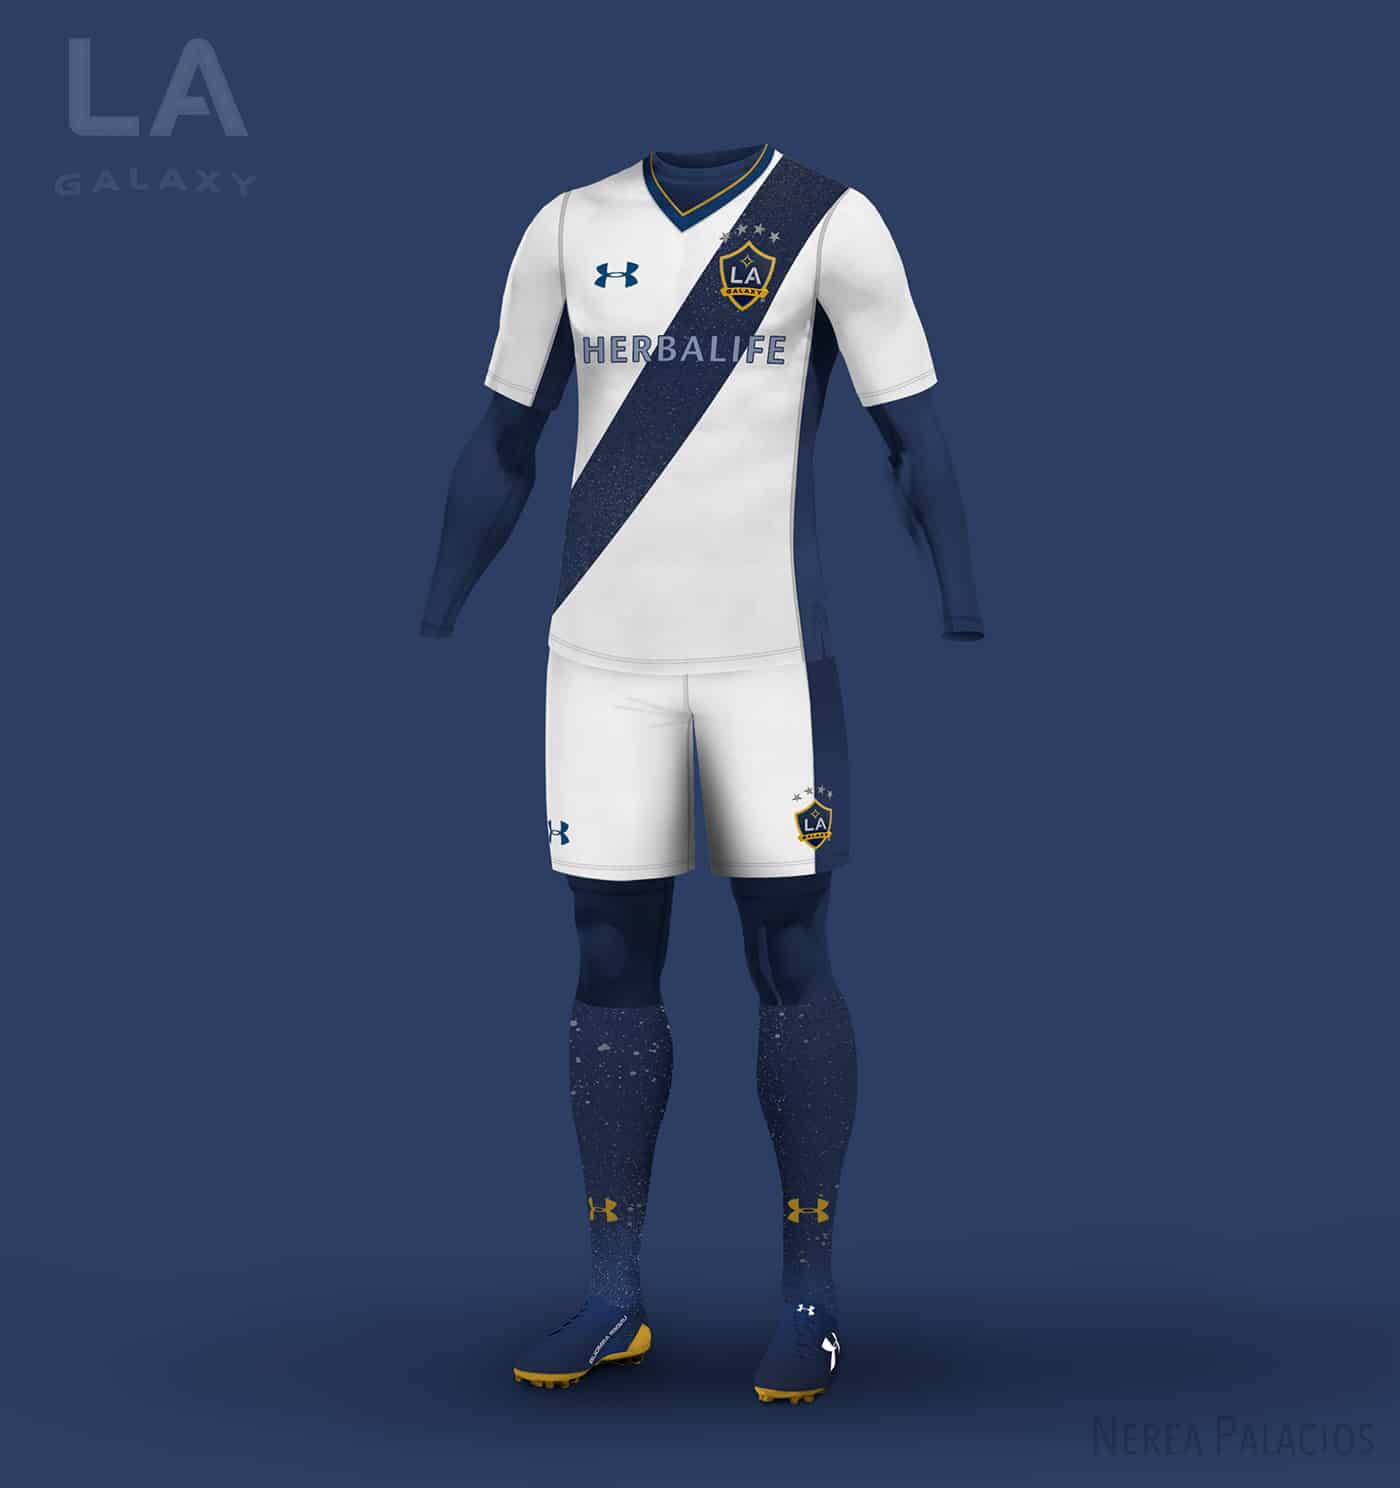 Si Under Armour équipait les équipes de Major League Soccer ...